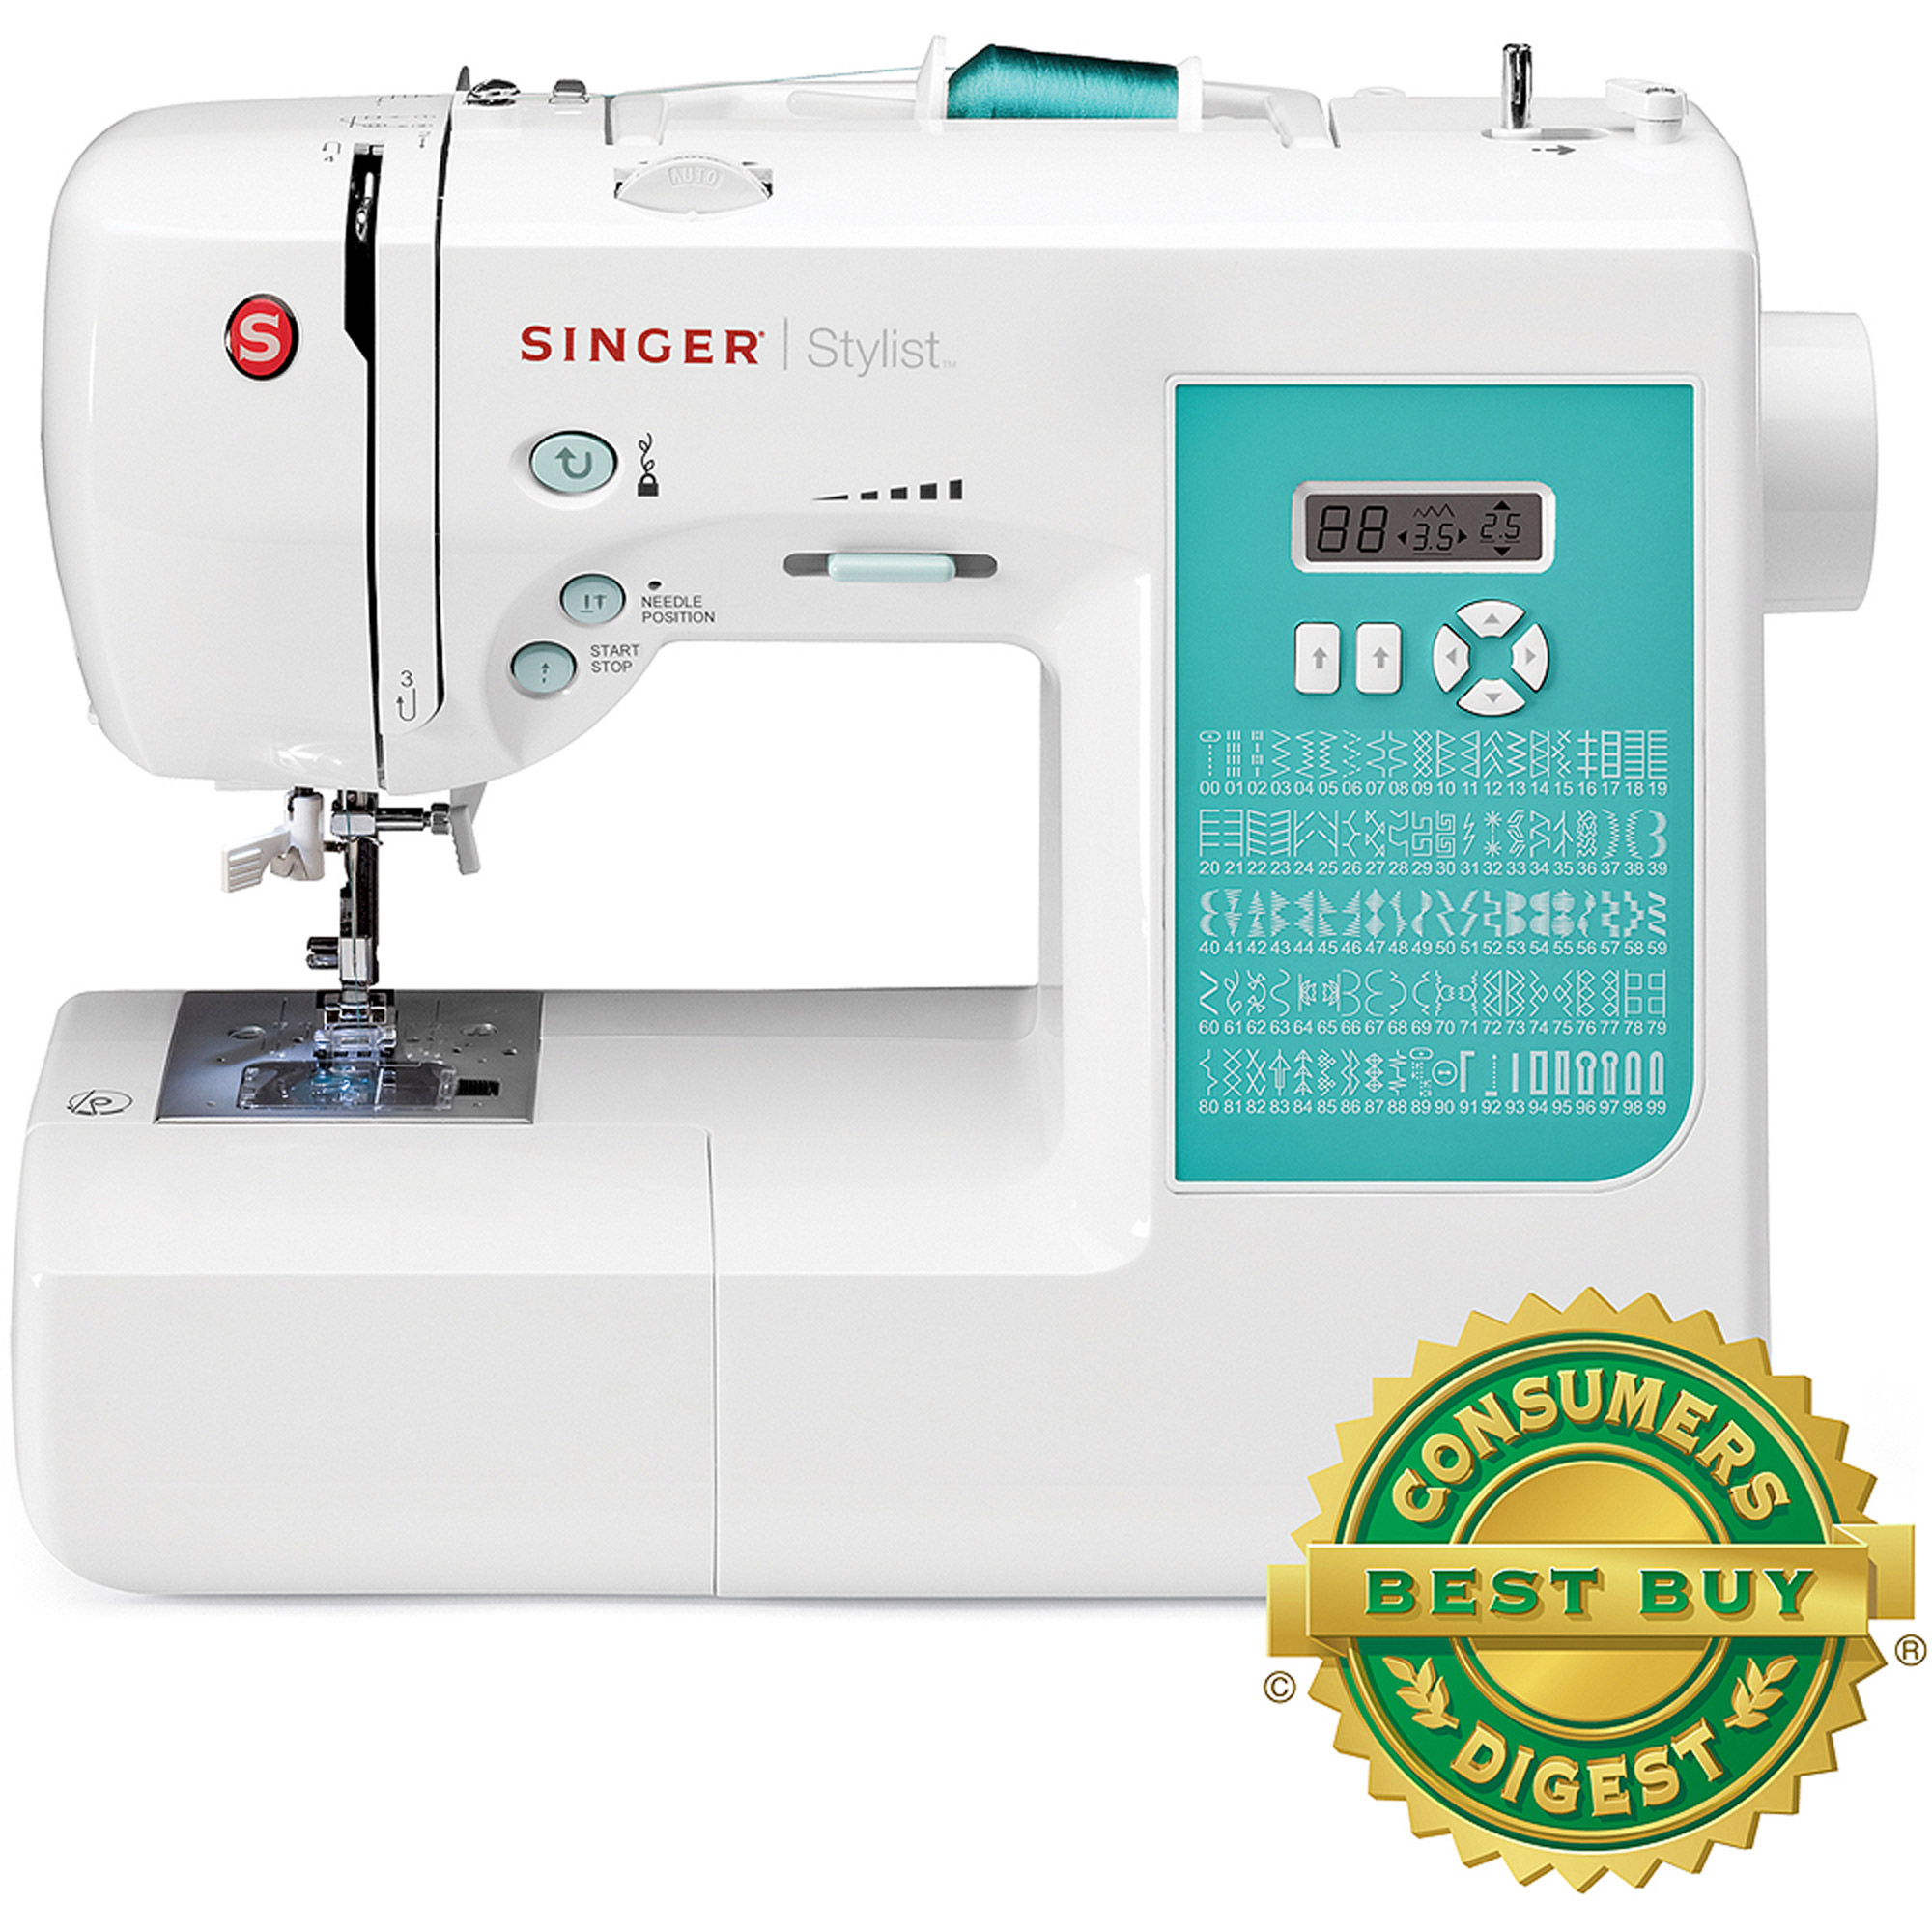 Singer 7258 Sewing Machines Review 2018